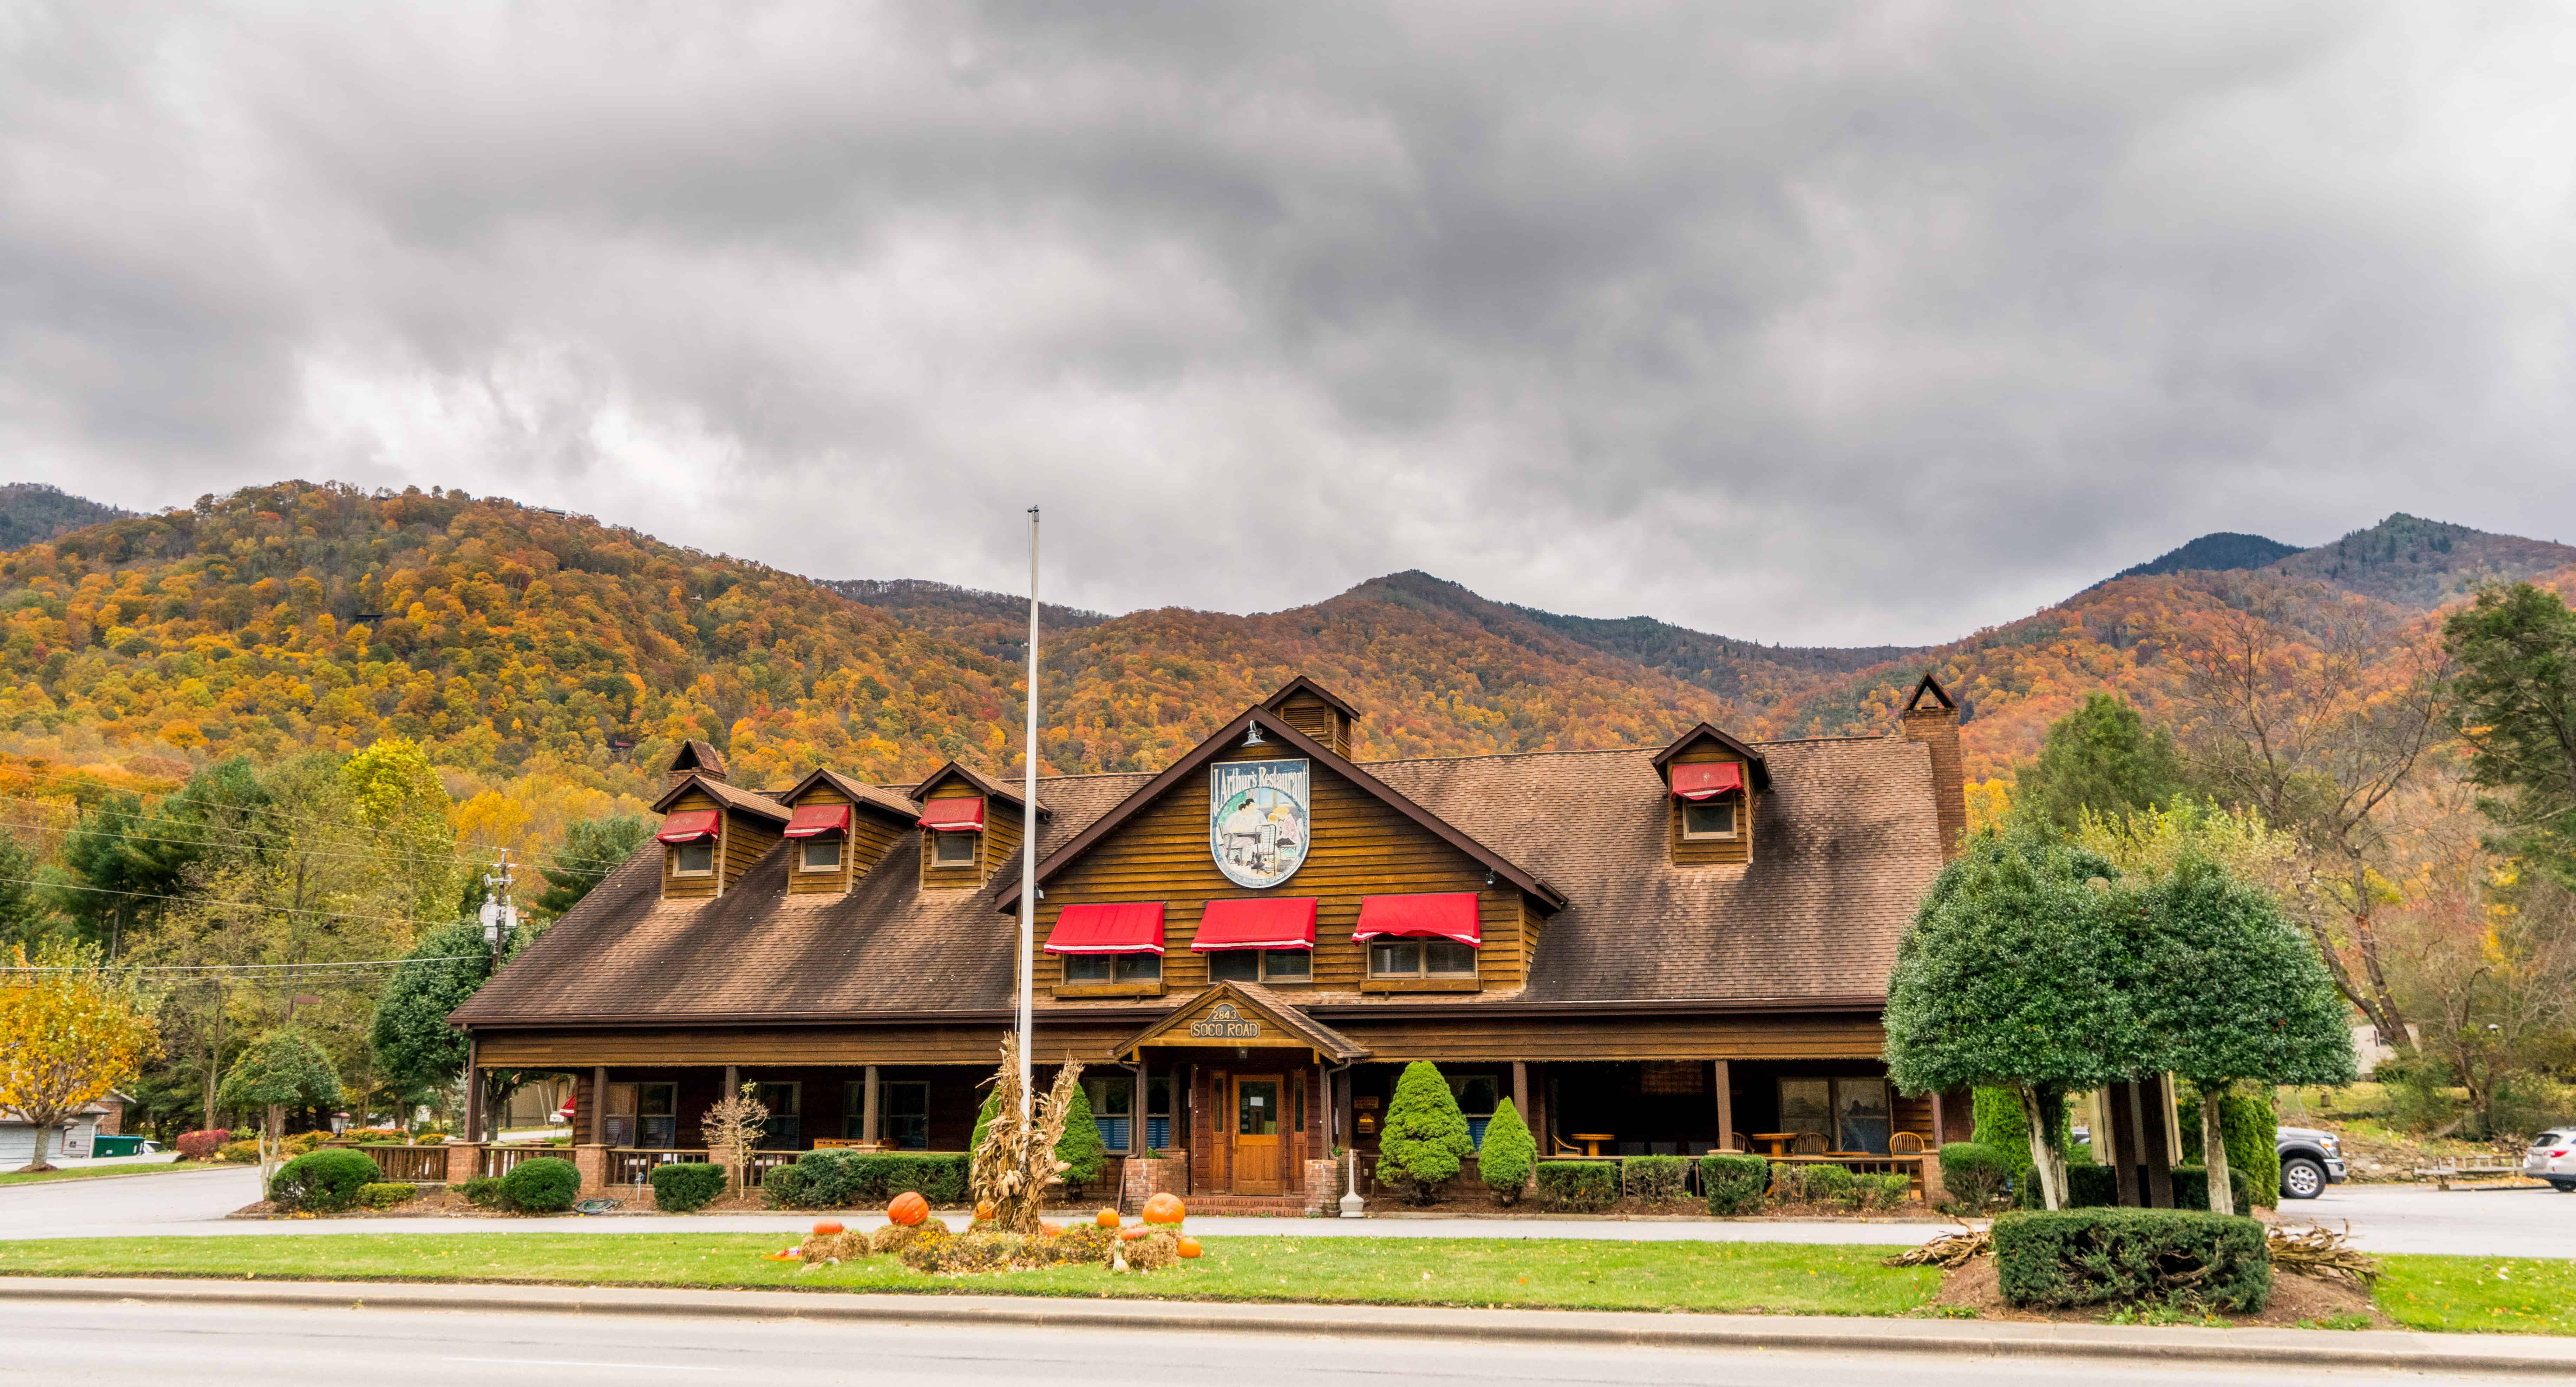 J Arthur's Restaurant in Maggie Valley